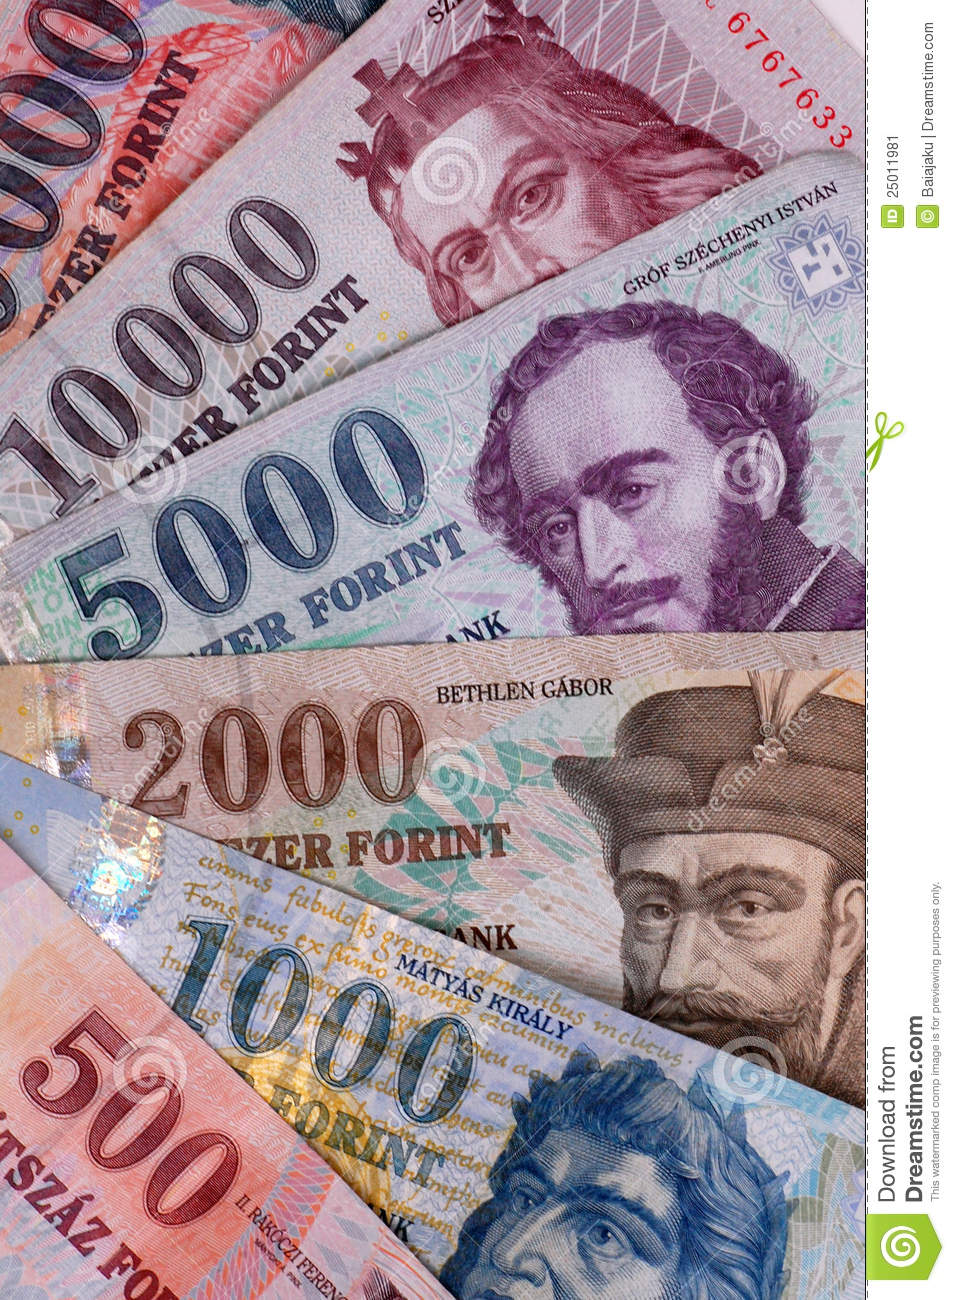 These are the hungarian banknotes, this is the forint.